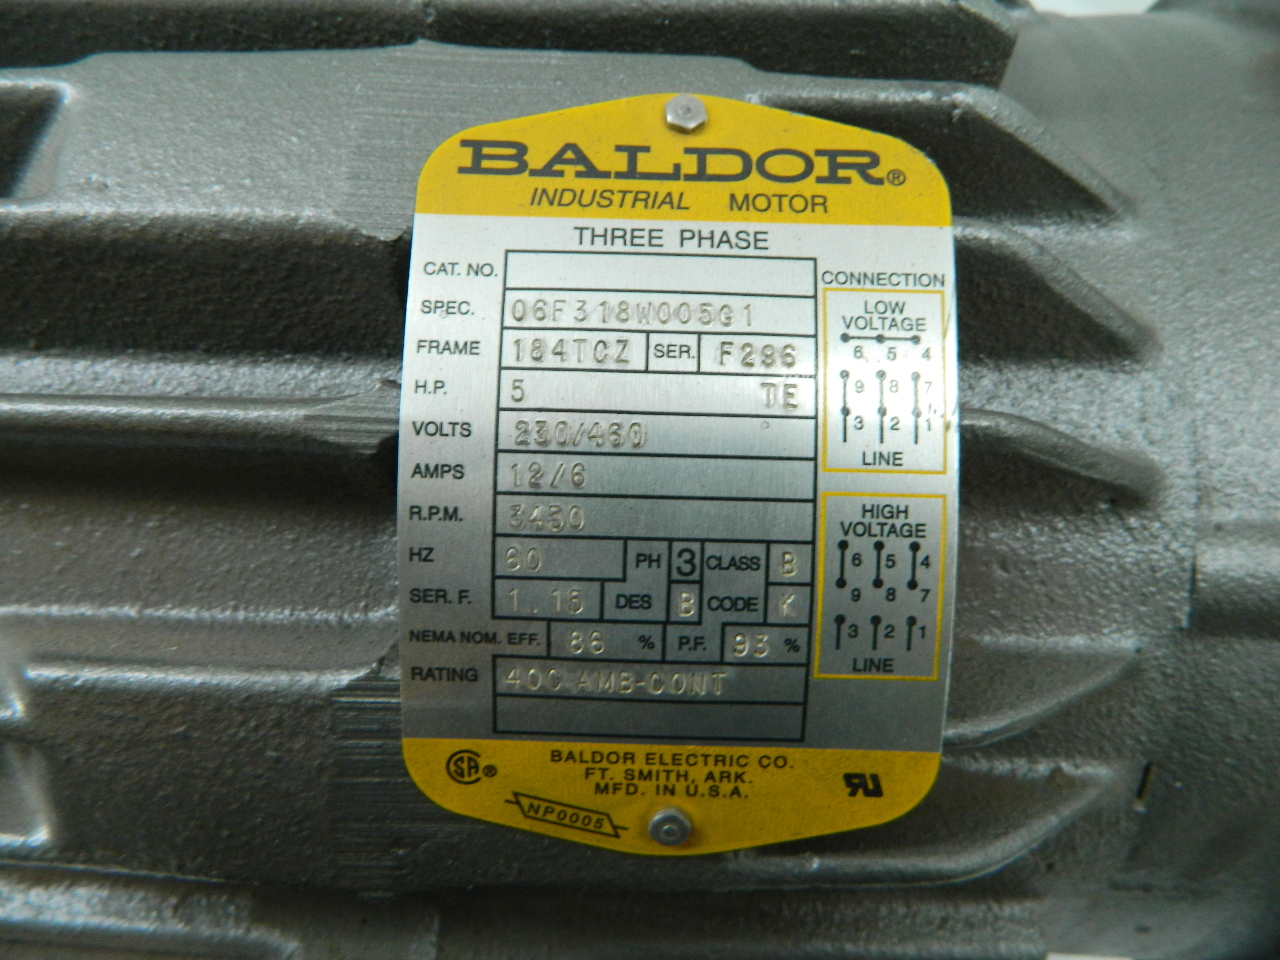 ip5524 baldor 5hp electric motor 3450 rpm 184tcz frame te 208 460vac 3 phase 3?resized680%2C510 baldor 10 hp electric motor wiring diagram efcaviation com baldor motors wiring diagram 3 phase at creativeand.co